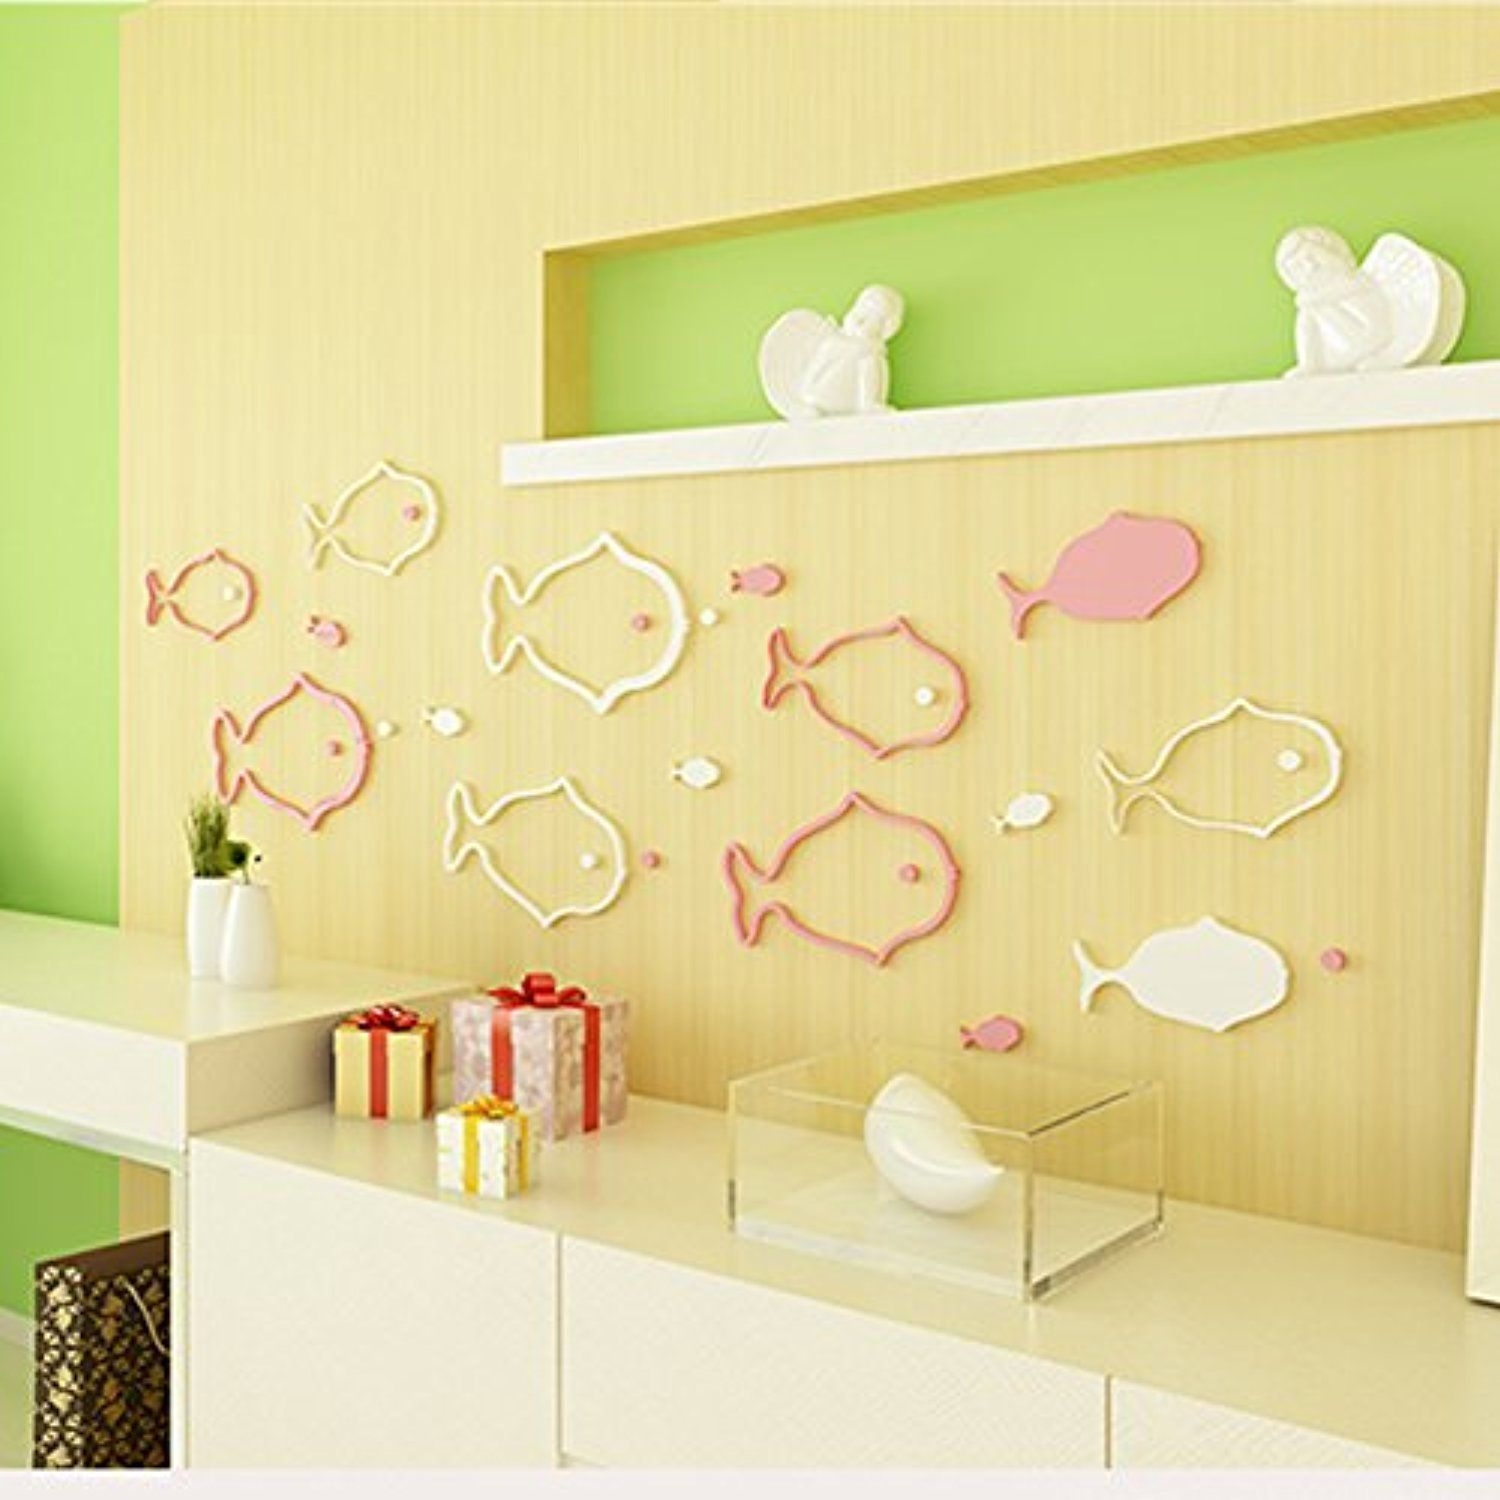 3D Wooden Tropical Fish Stencil Set Wall Stickers Reusable Home DÃ ...